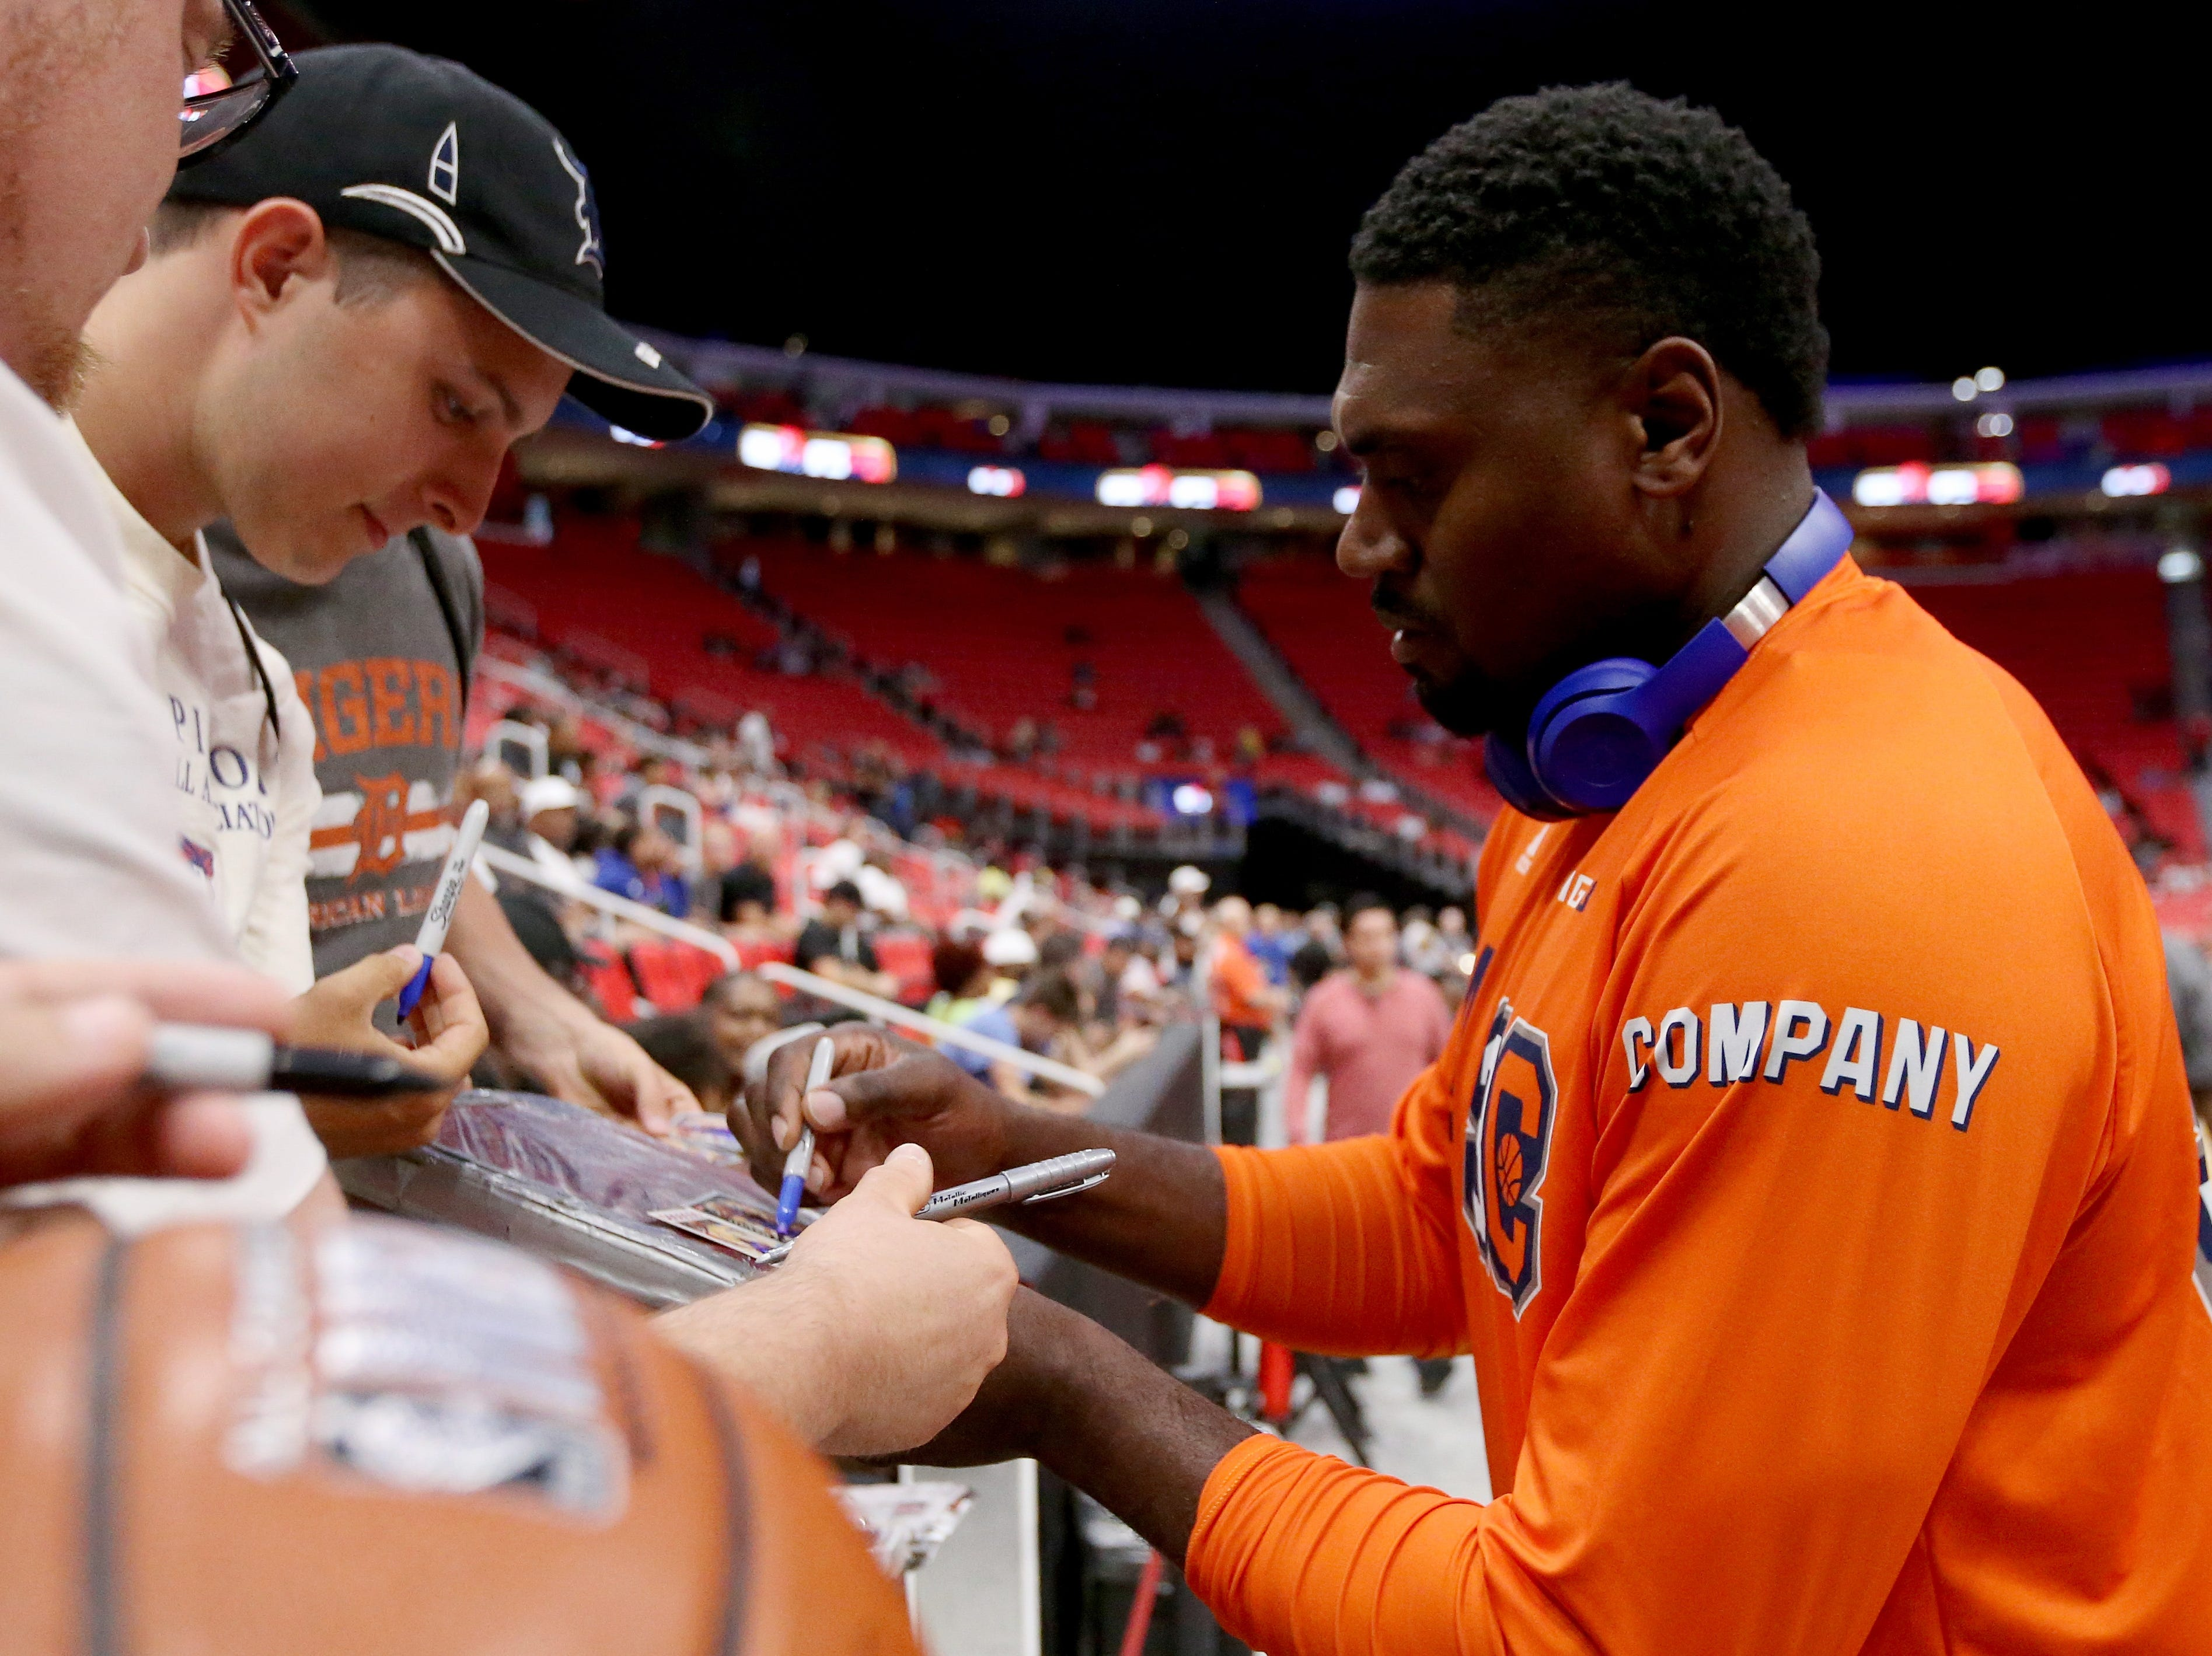 Jason Maxiell of 3s Company signs autographs for fans during BIG3 - Week Four at Little Caesars Arena on July 13, 2018 in Detroit.